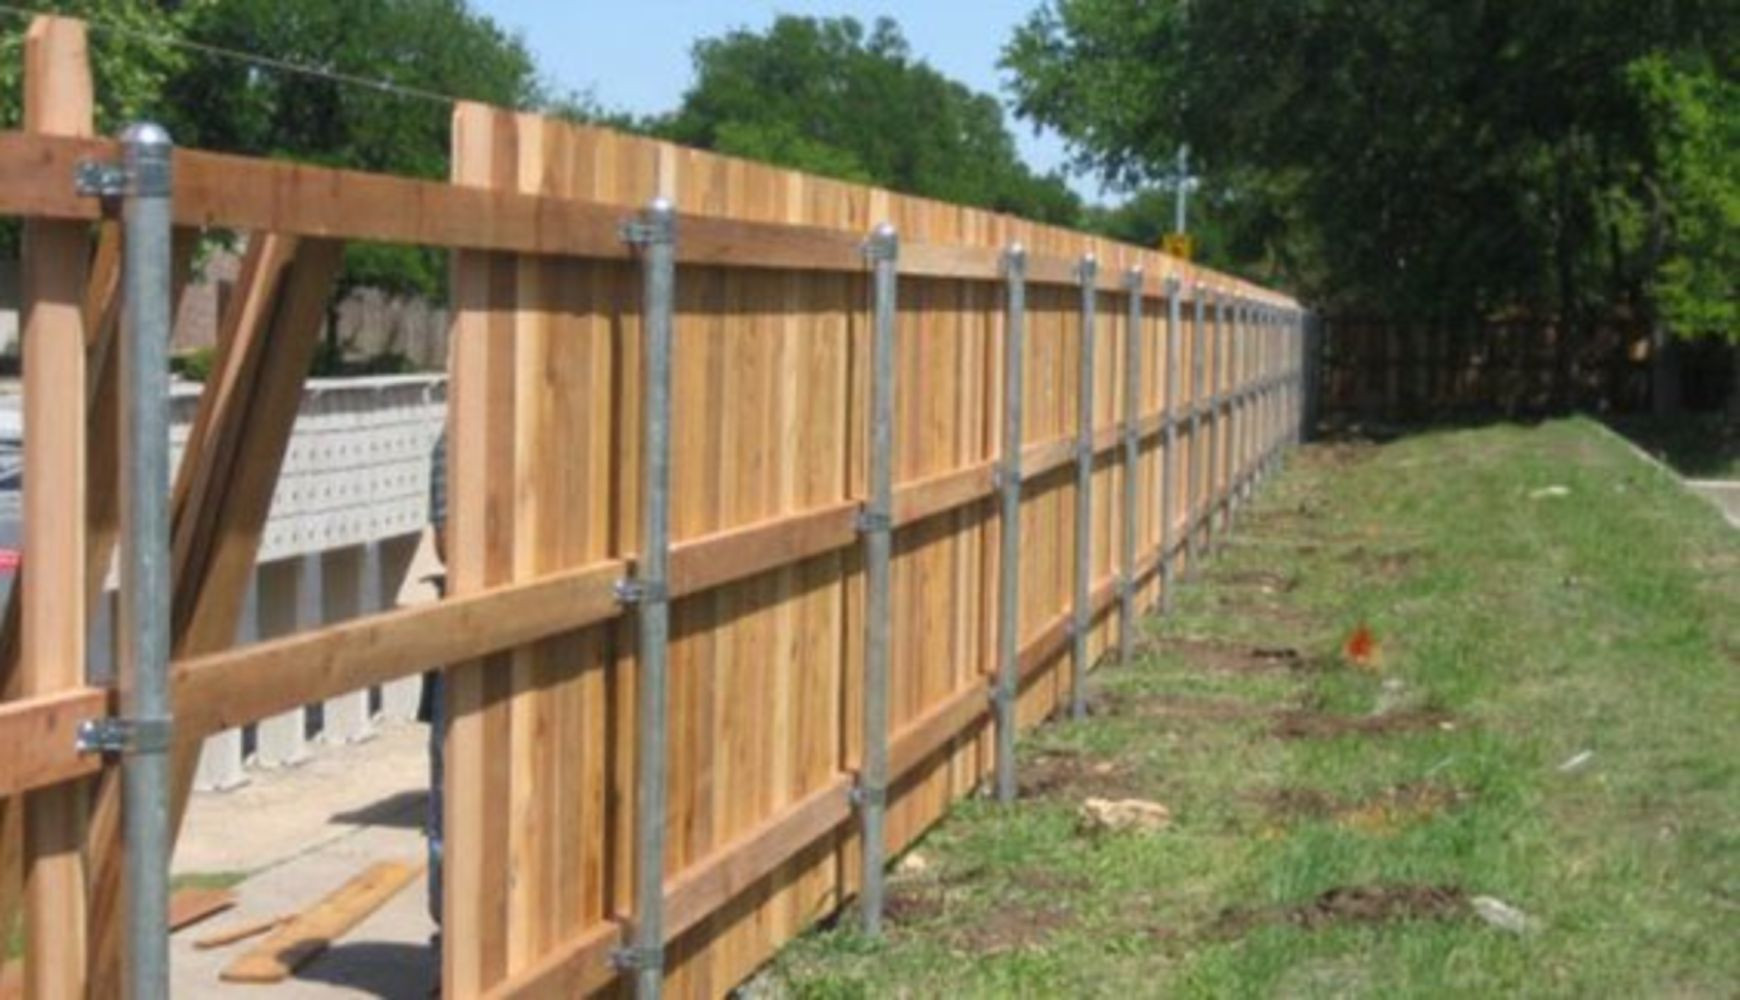 Best ideas about Cheap Fence DIY . Save or Pin Cheap diy privacy fence ideas 2 Wartaku Now.